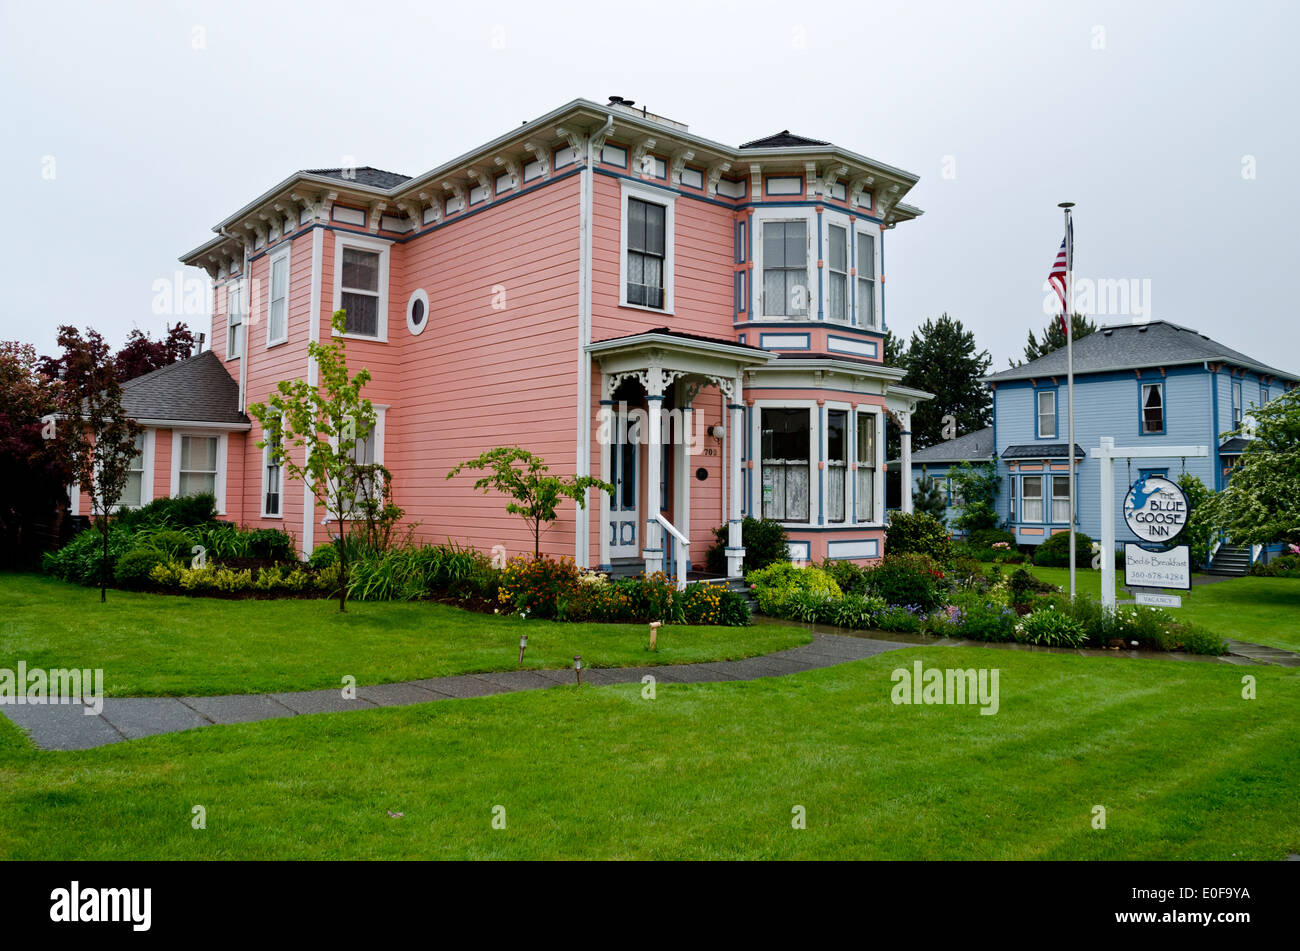 Victorian Style Blue Goose Inn Bed And Breakfast In Historic Coupeville On  Whidbey Island, Washington State. USA. Rural Town.